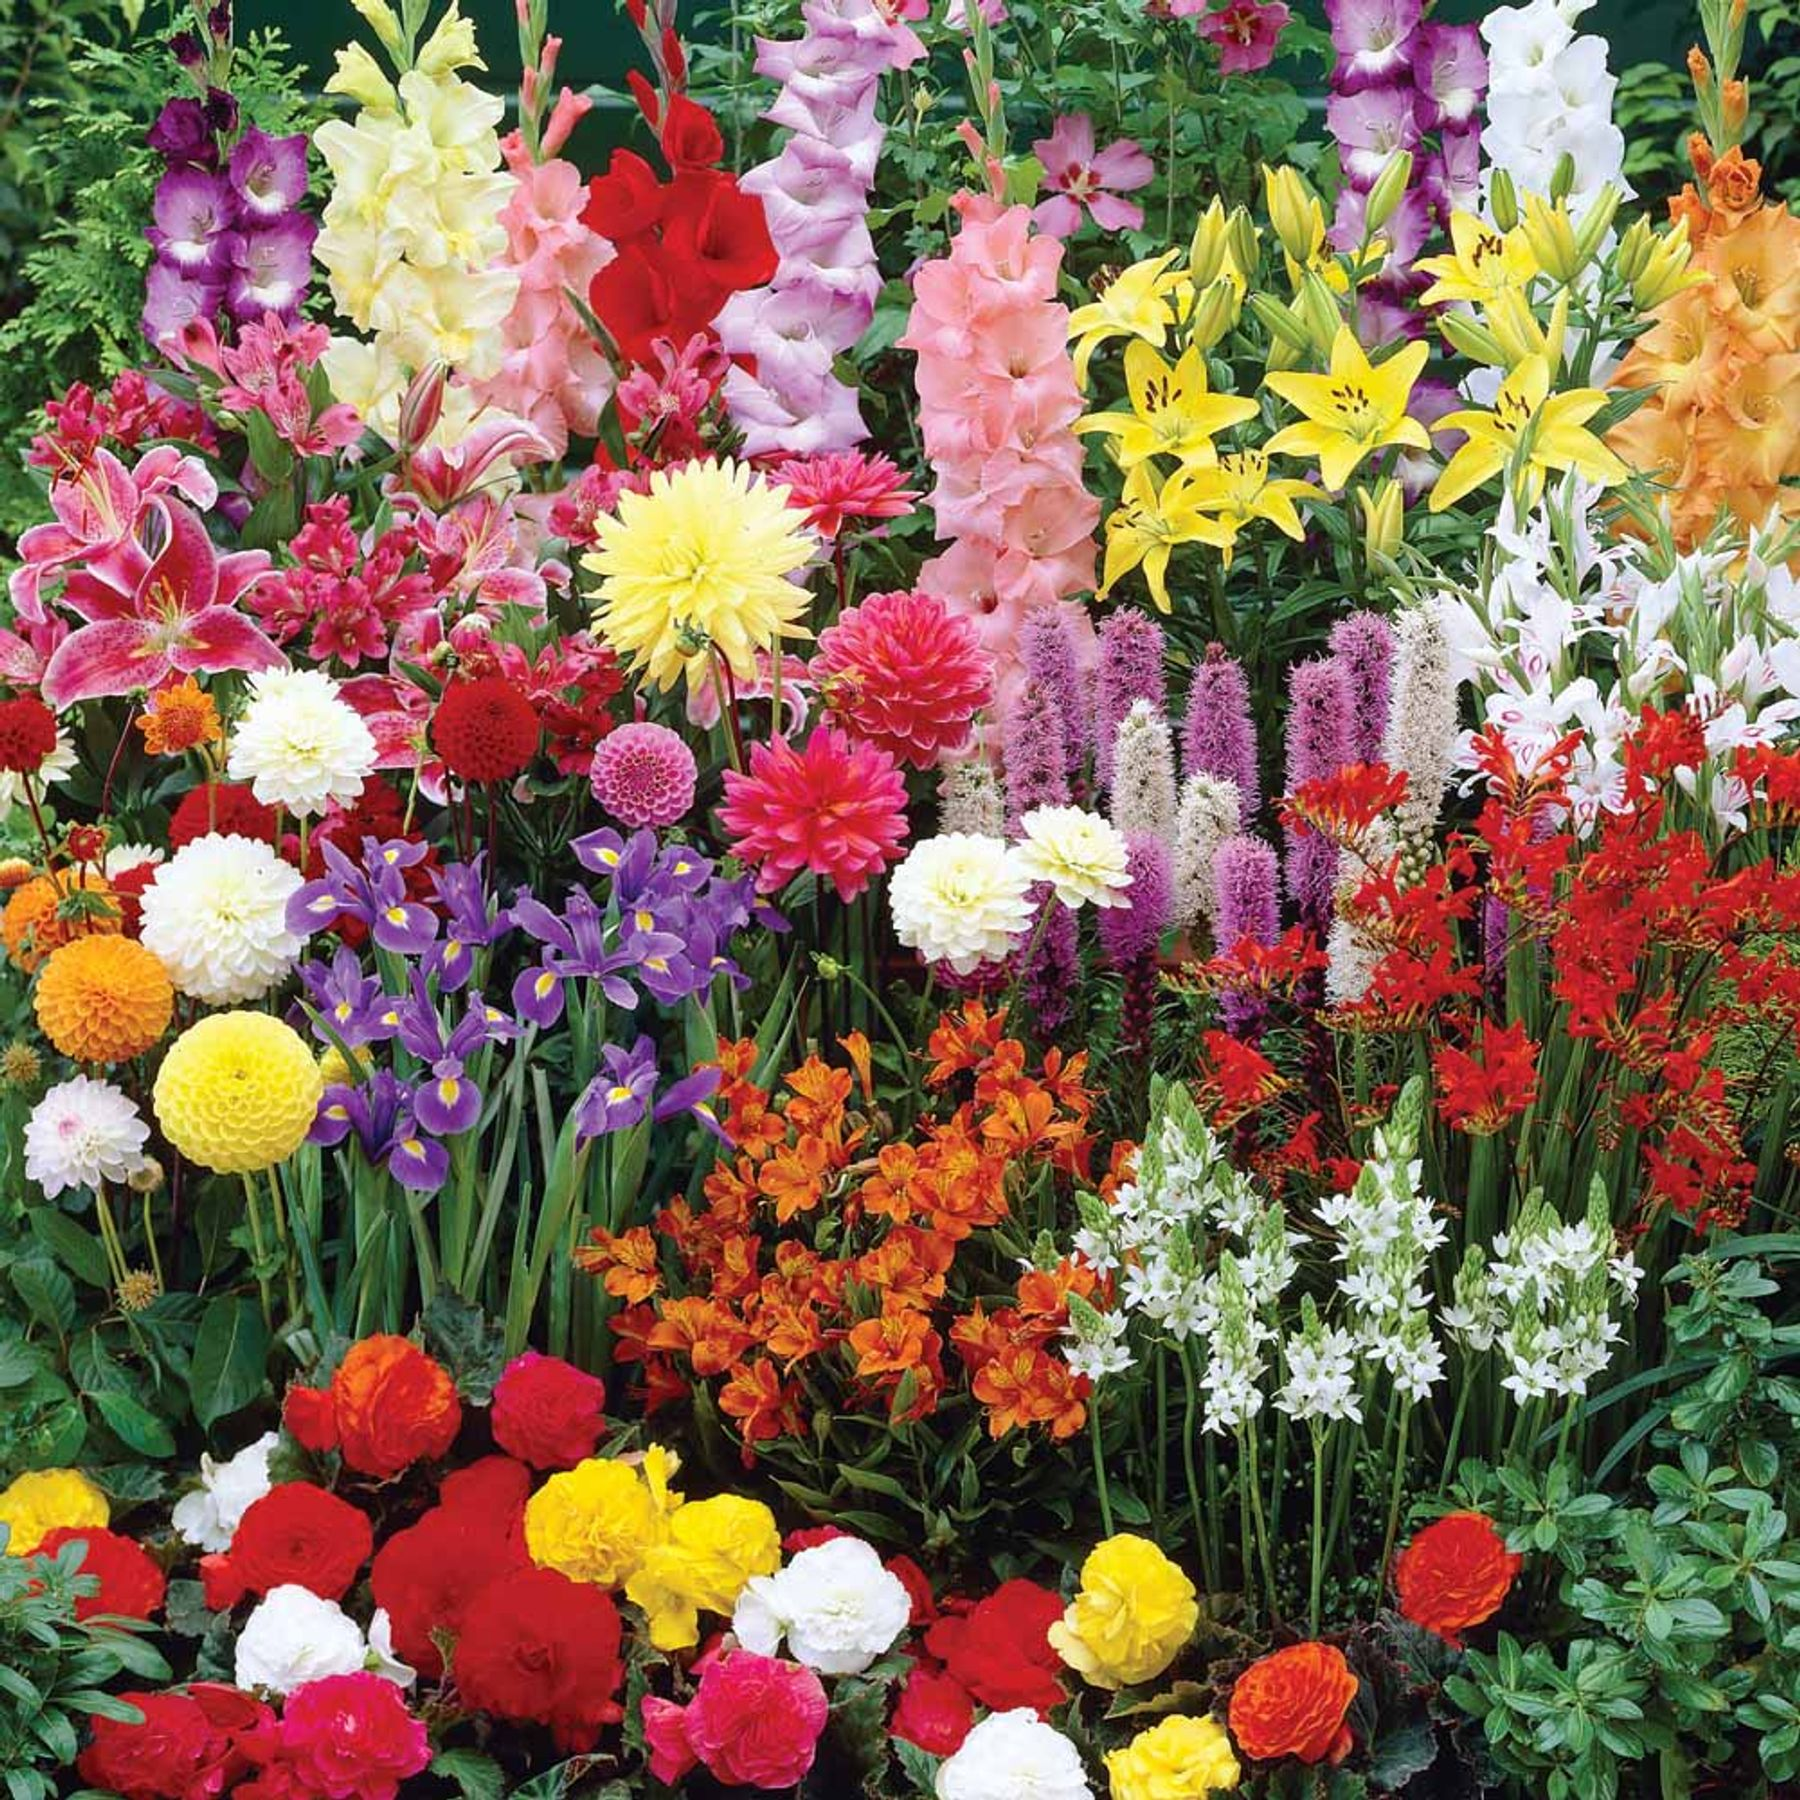 Summer Flowering Bulbs To Grow In Pots For Cutting Gardening